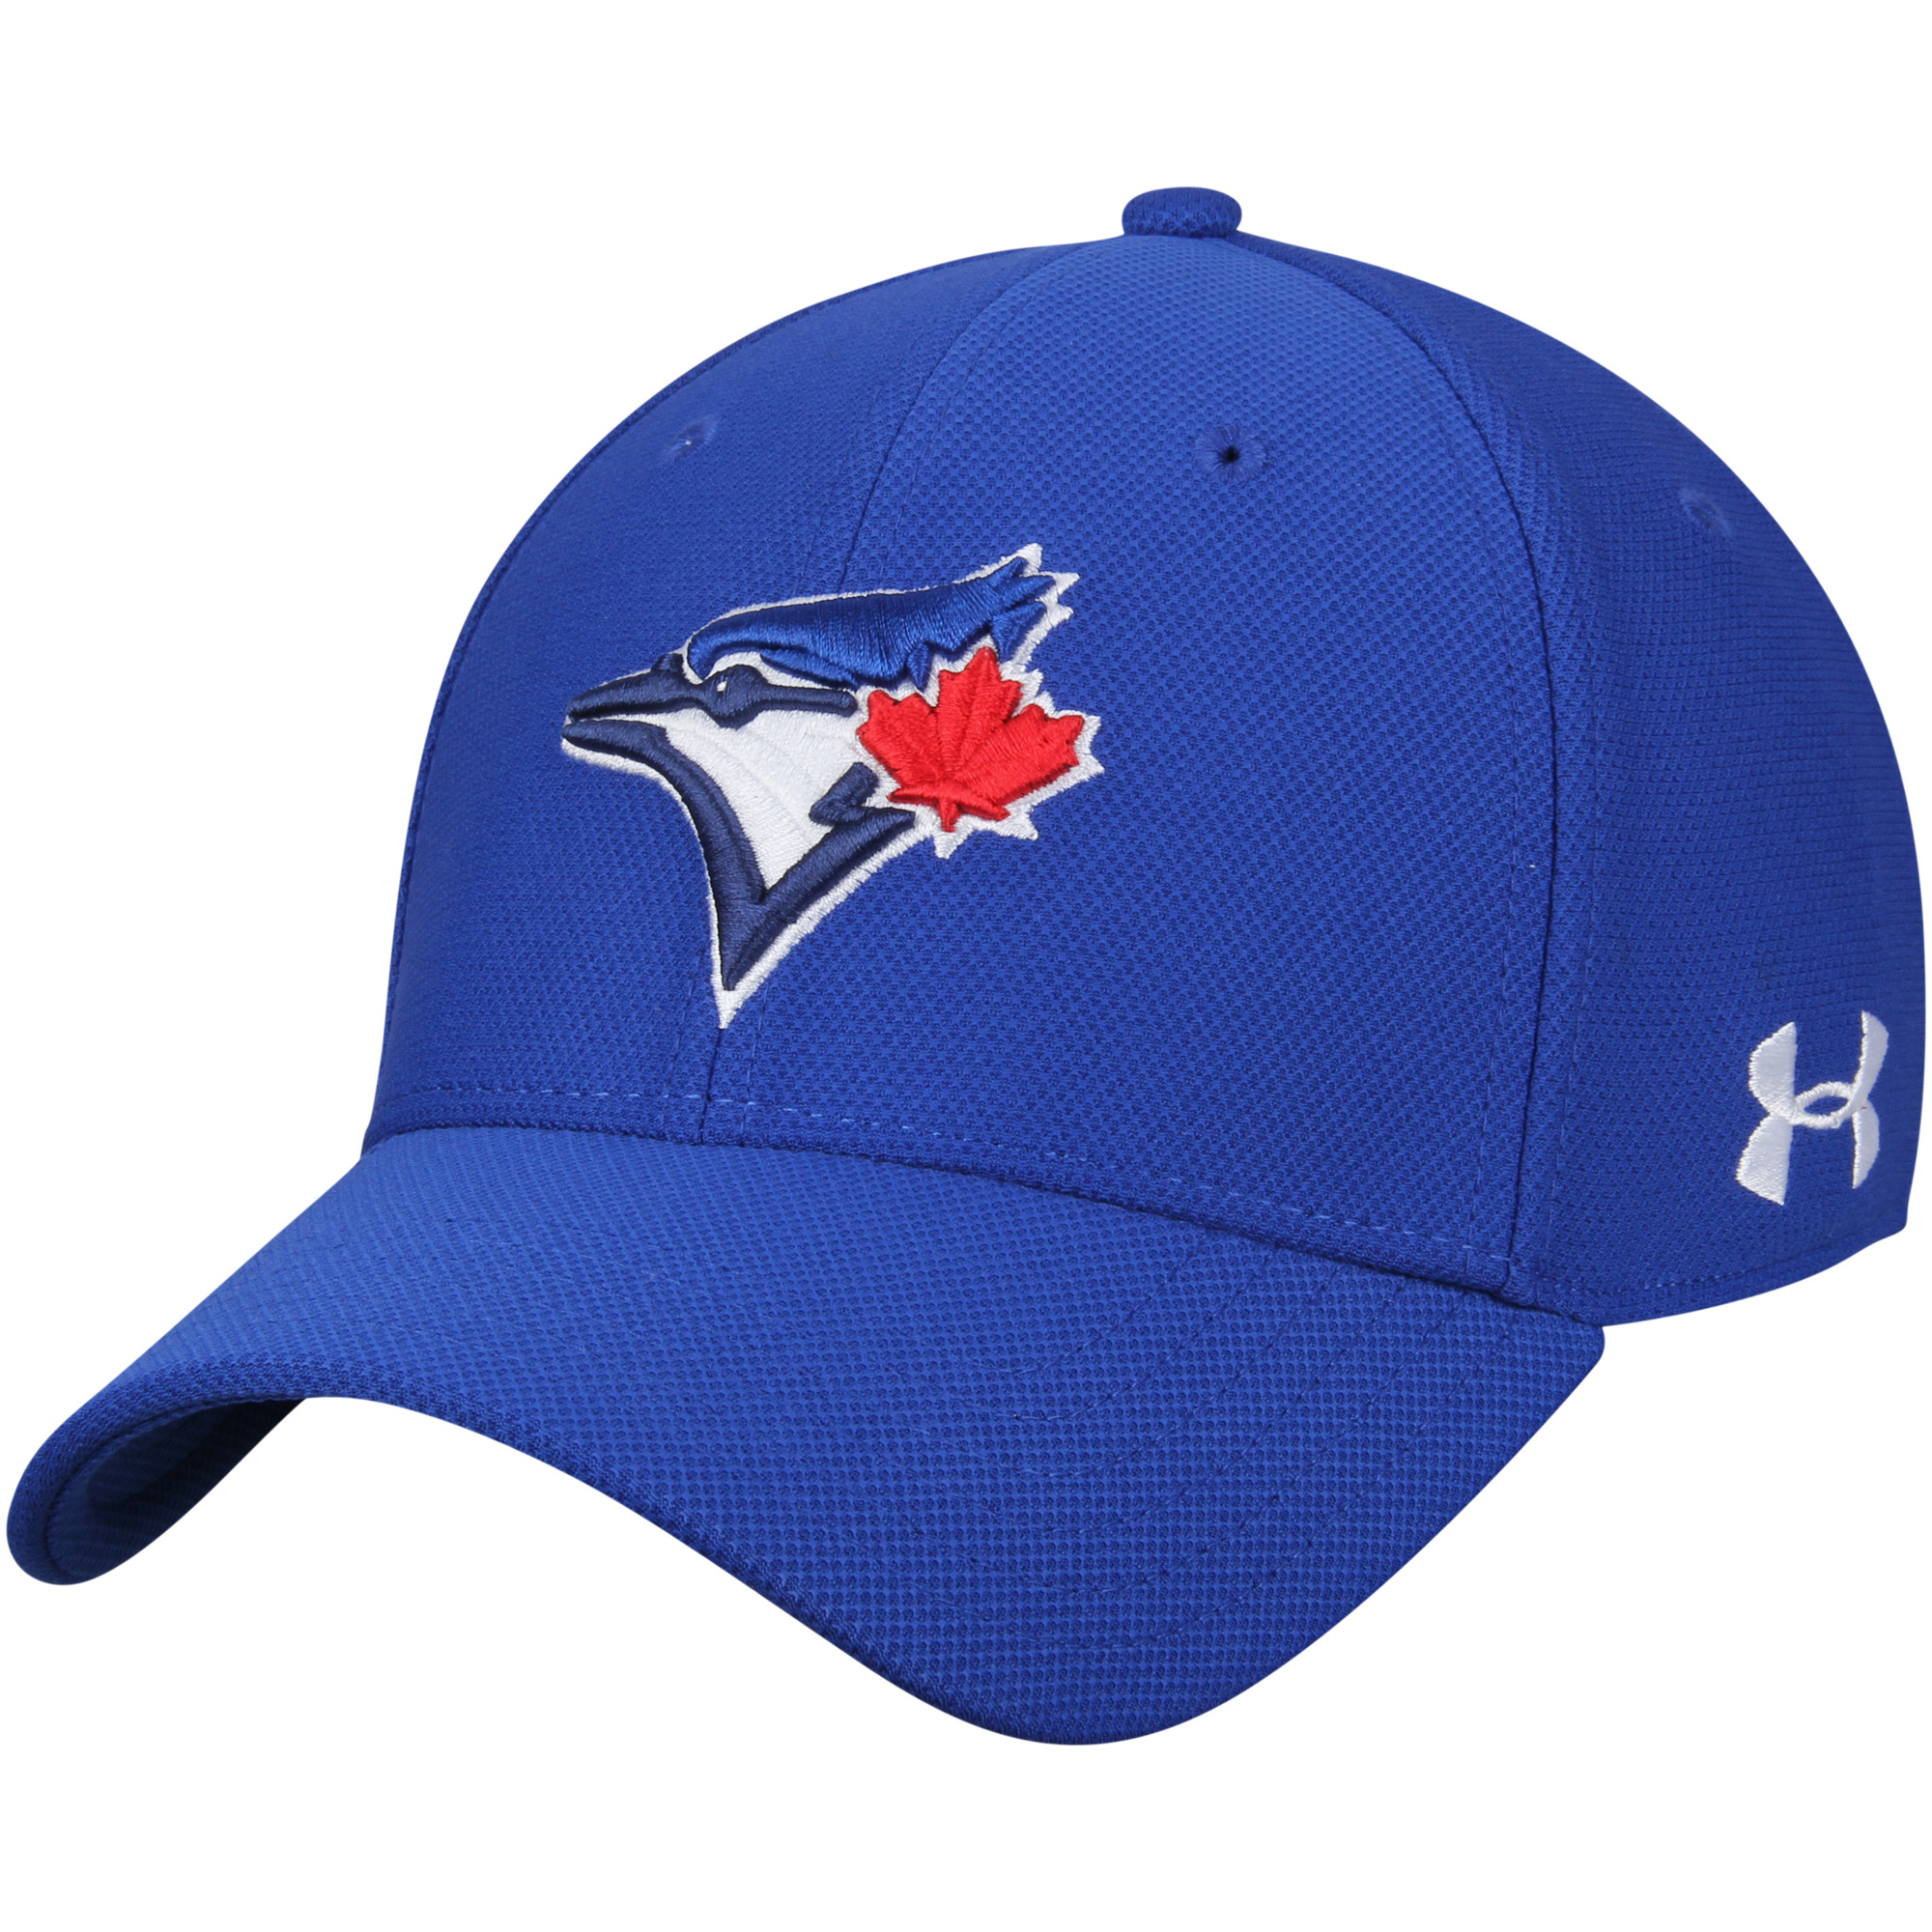 Toronto Blue Jays Under Armour Blitzing Performance Adjustable Hat - Royal - OSFA